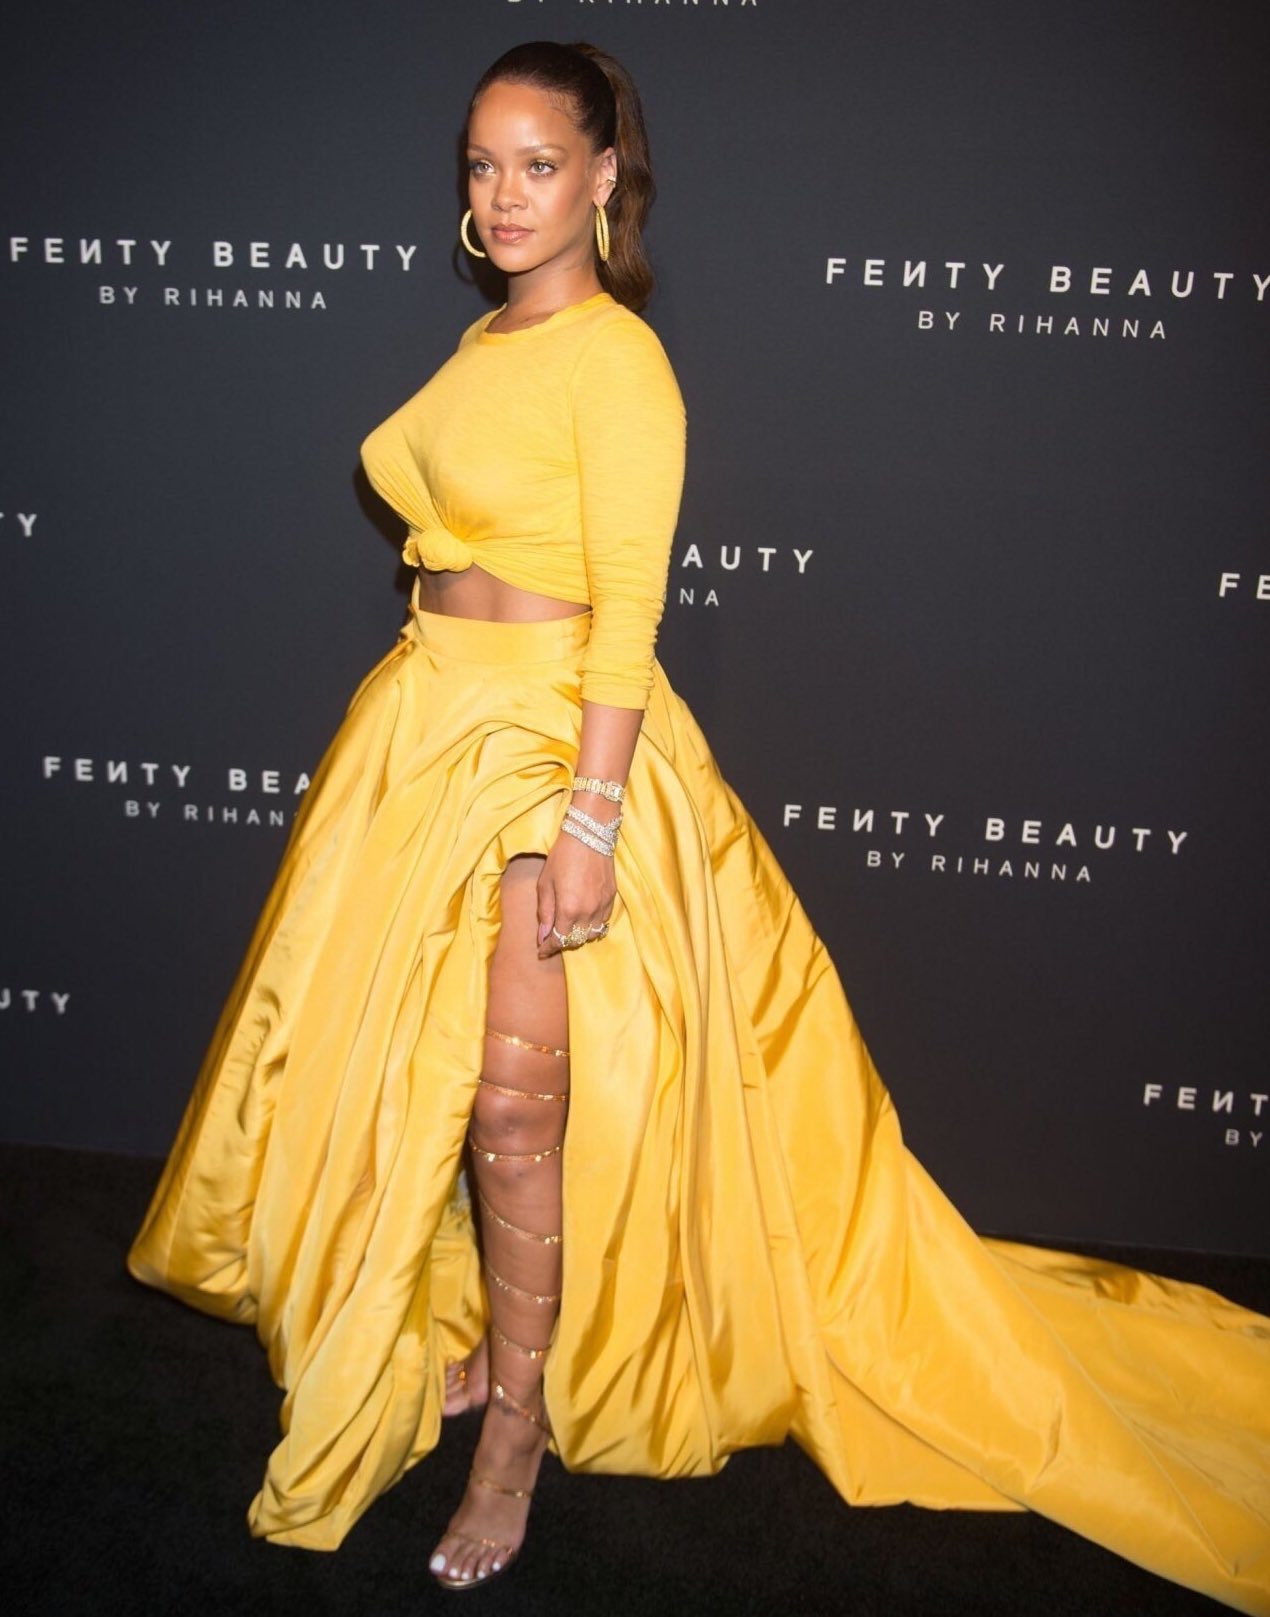 Fenty Beauty Out Now! Full Collection Inside